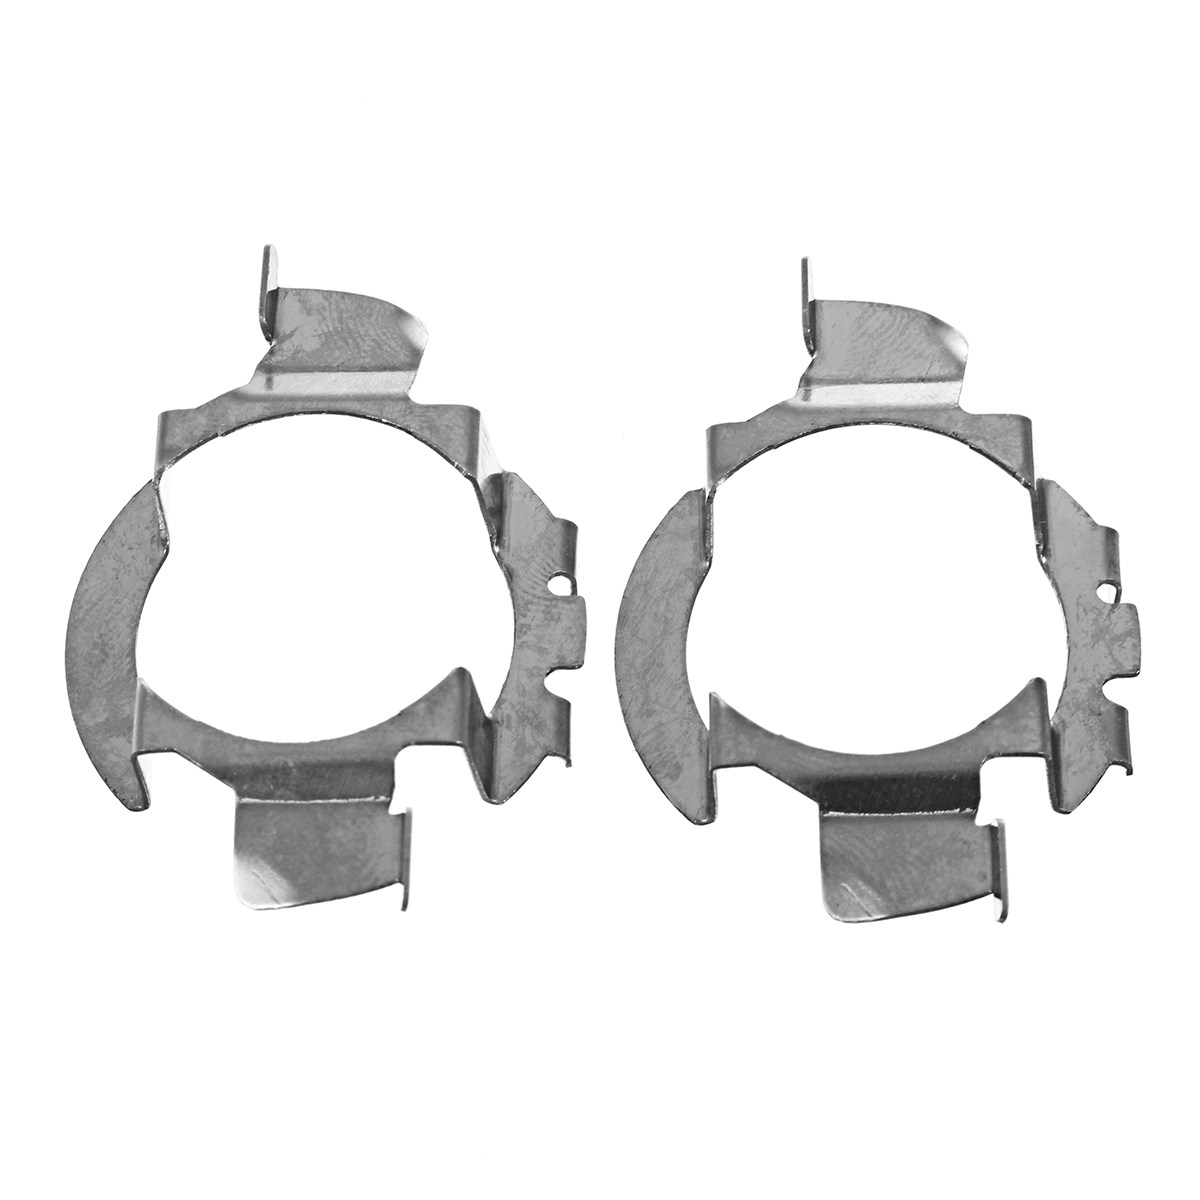 Pack of 2 KATUR H7 LED Adapter Holder Socket Base for H7 LED Headlight Bulb for New Bora Nissan Qashqai Buick Volkswagen Mercedes Audi BMW Passat